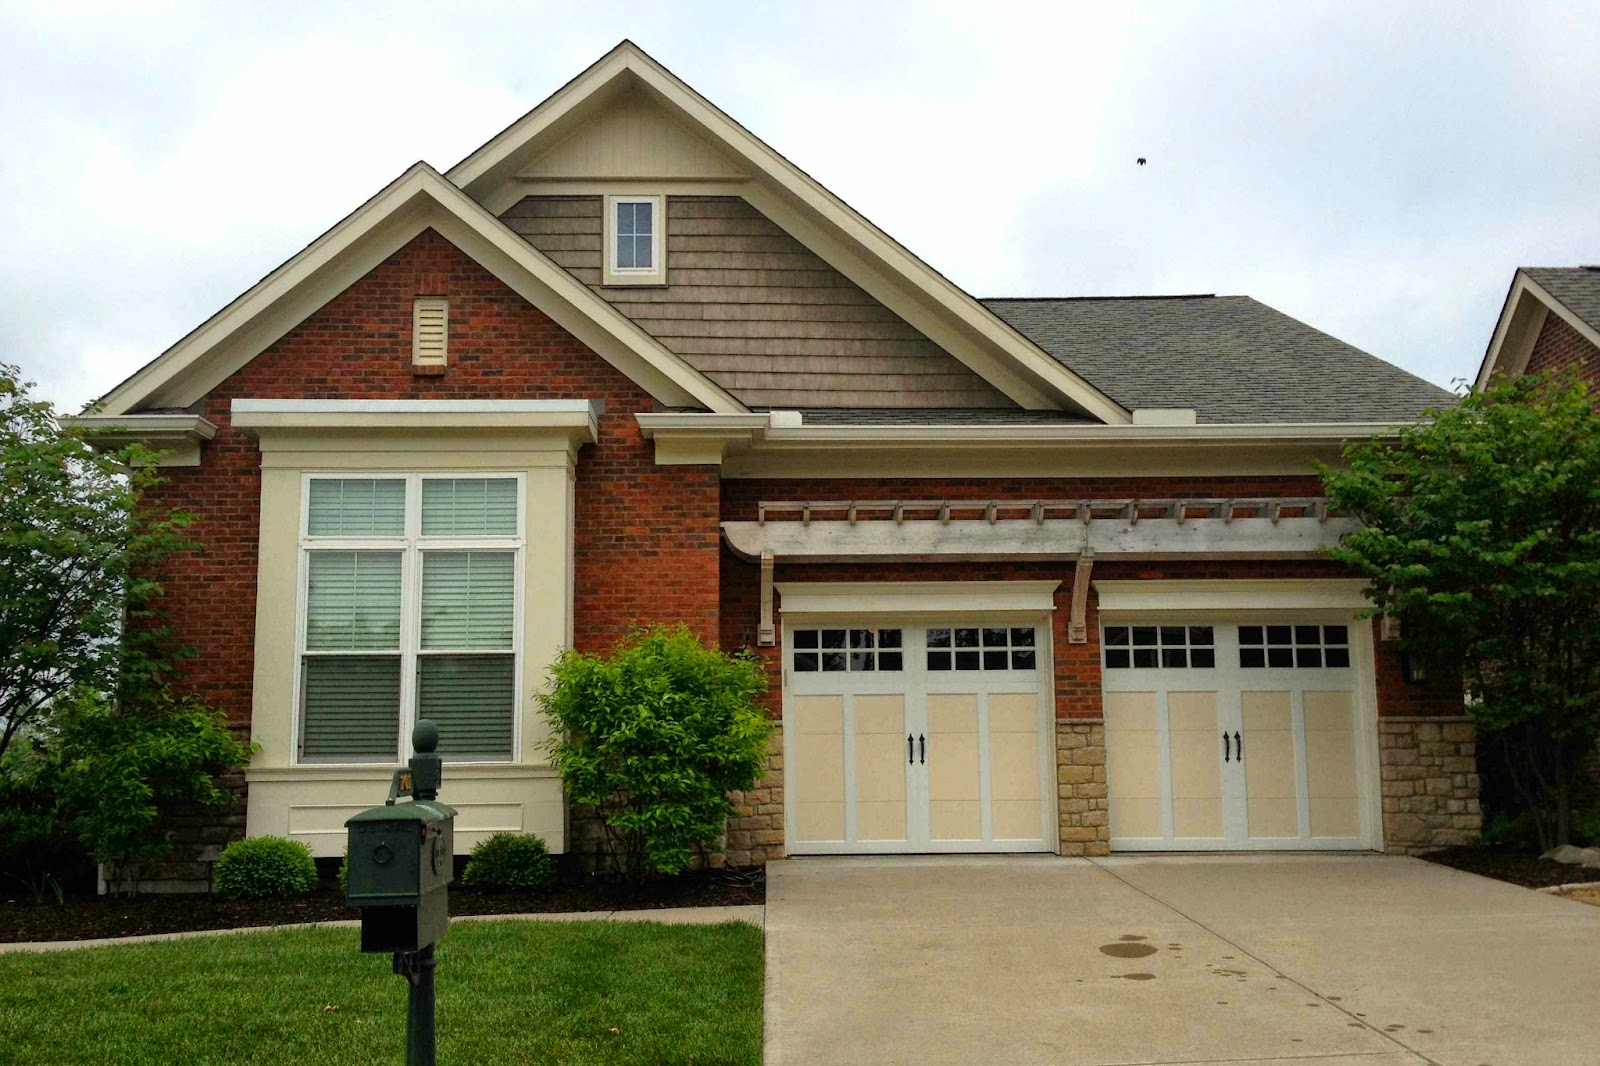 Garage Door Replacement: 10 Tips for Making the Right ...